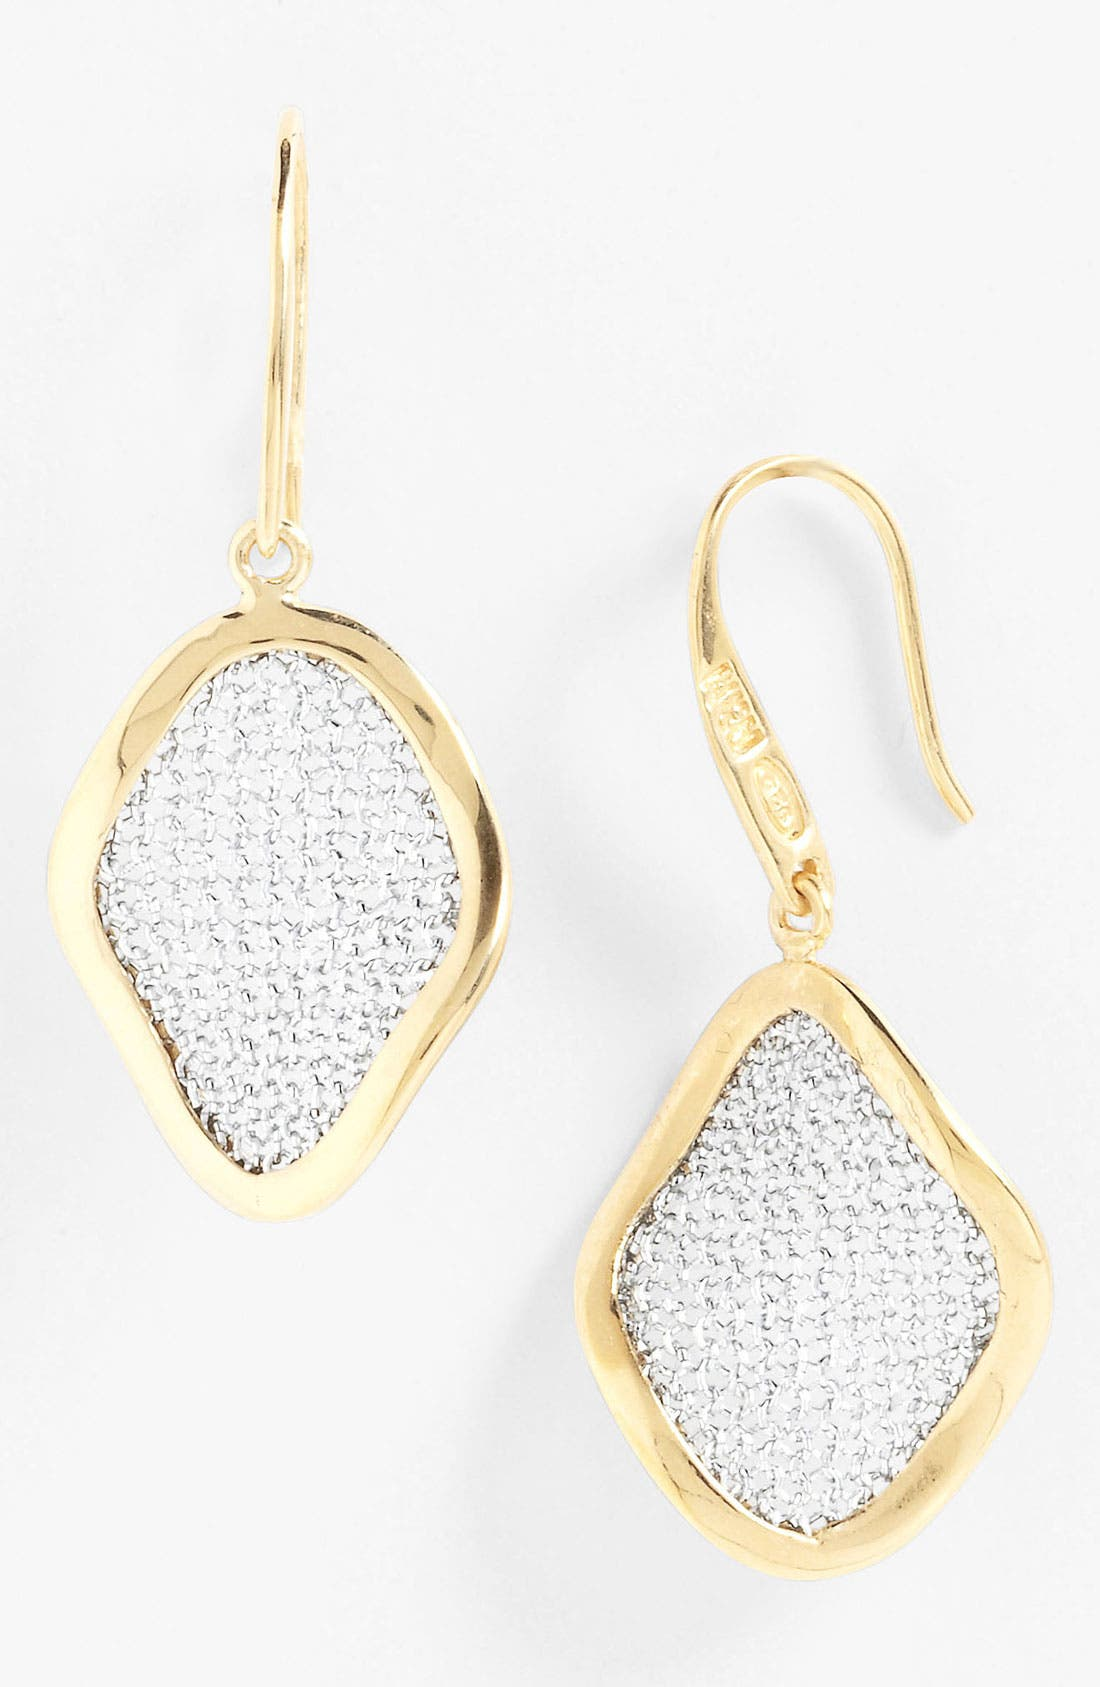 Main Image - Adami & Martucci 'Mesh' Small Drop Earrings